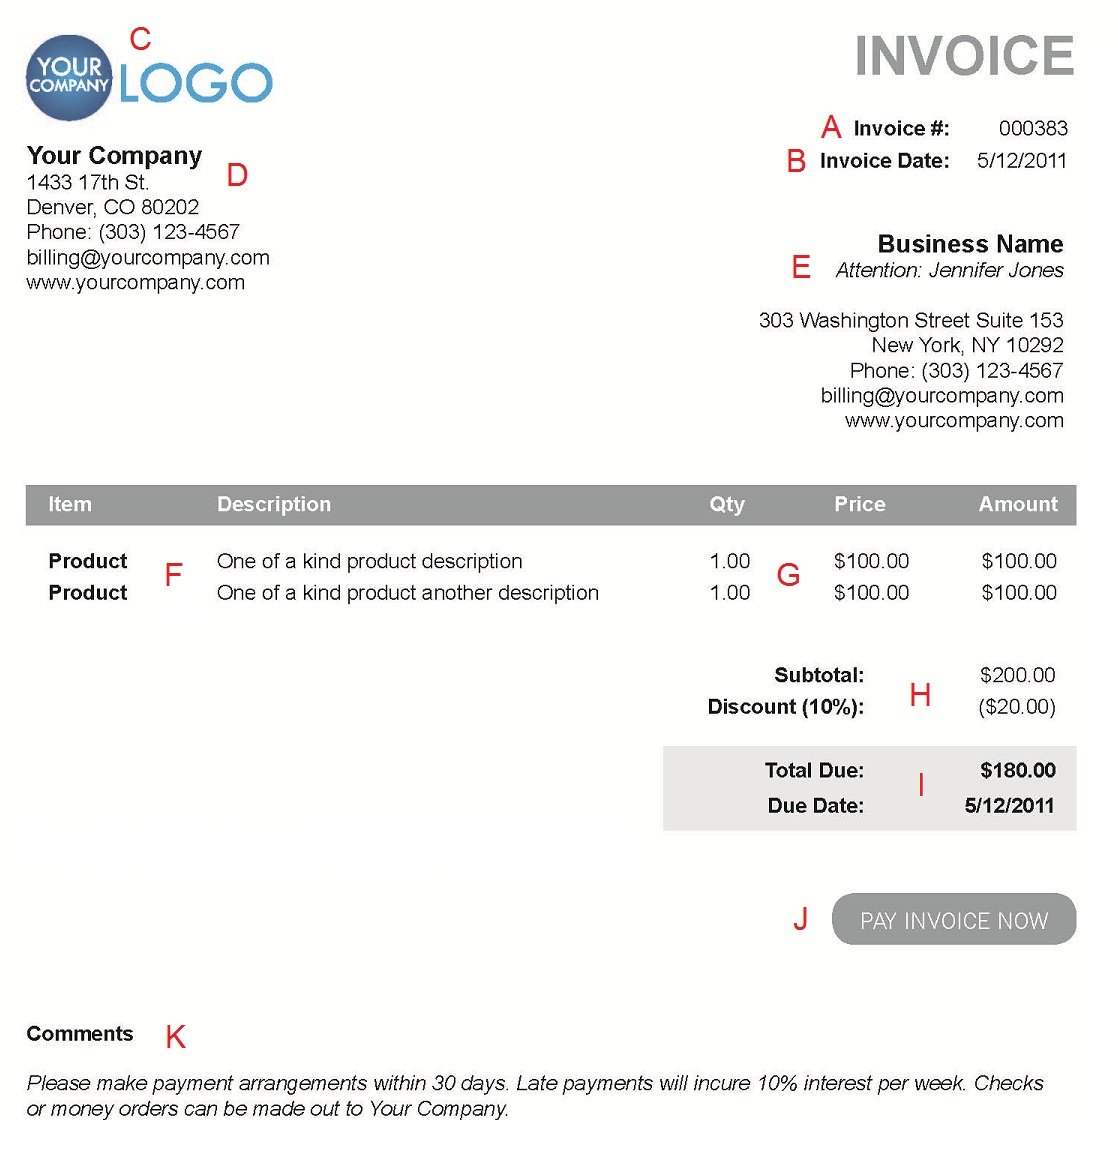 Ultrablogus  Surprising The  Different Sections Of An Electronic Payment Invoice With Gorgeous A  With Lovely Paid The Invoice Also What Is Invoice Id In Addition What Is Mean By Invoice And Jeep Cherokee Invoice Price As Well As How To Send Invoice Additionally Invoice Translate From Paysimplecom With Ultrablogus  Gorgeous The  Different Sections Of An Electronic Payment Invoice With Lovely A  And Surprising Paid The Invoice Also What Is Invoice Id In Addition What Is Mean By Invoice From Paysimplecom